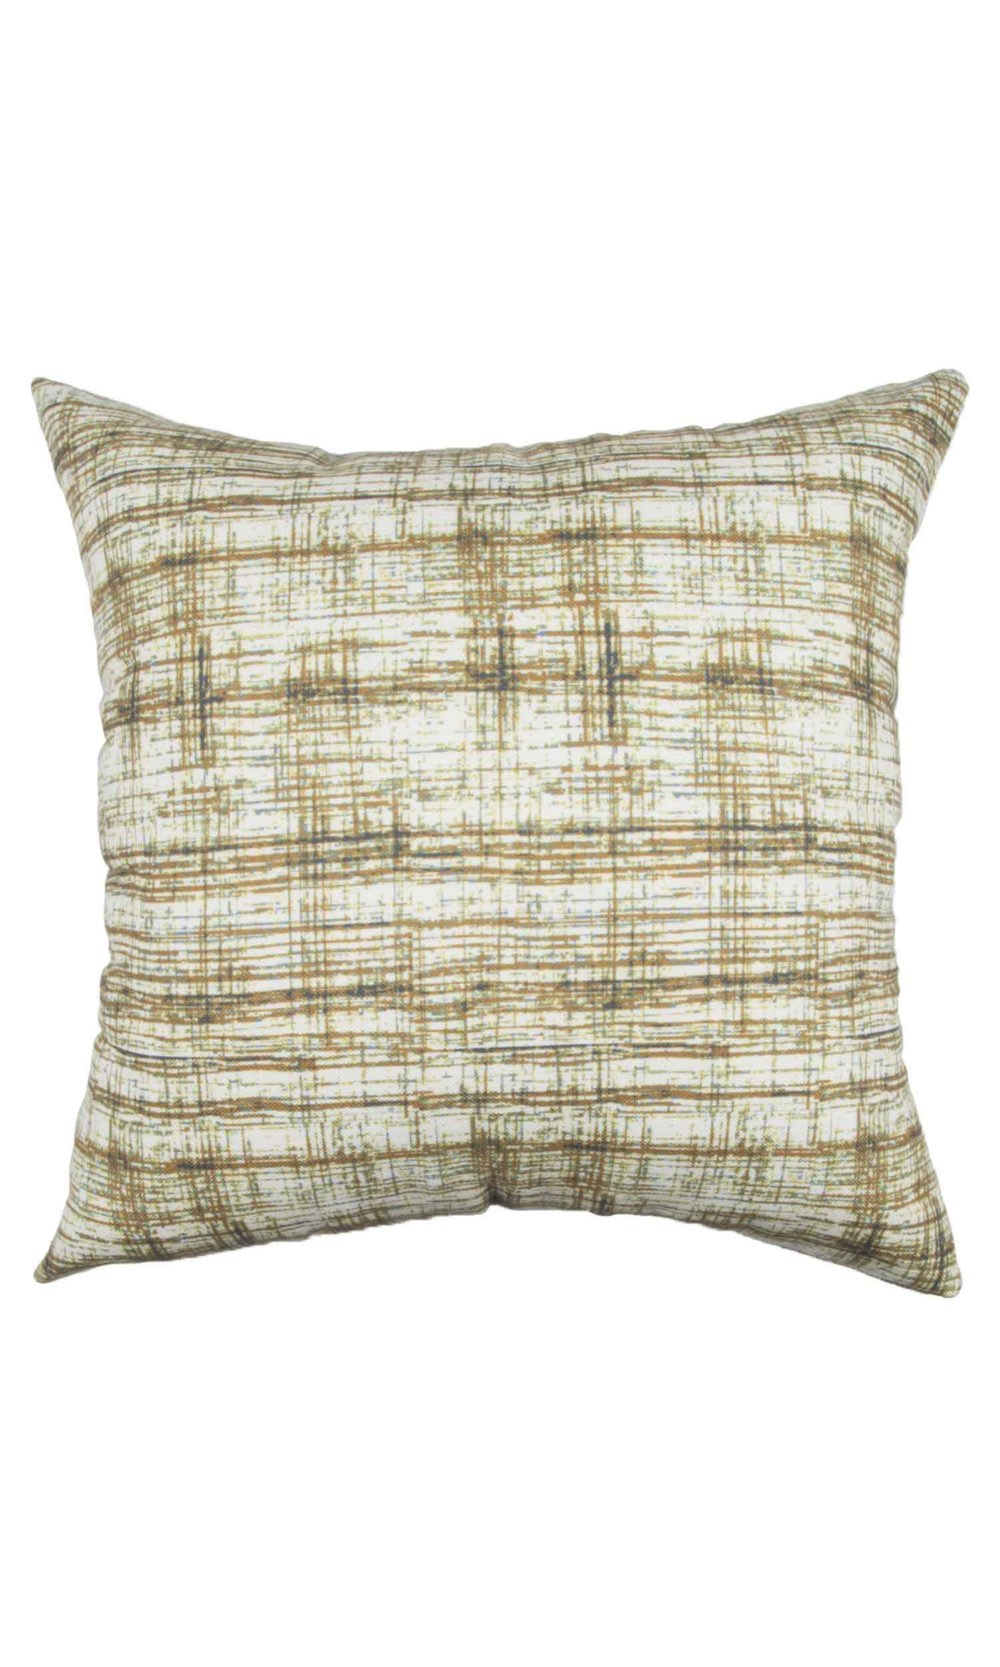 Printed Cotton Affordable Cushion Cover